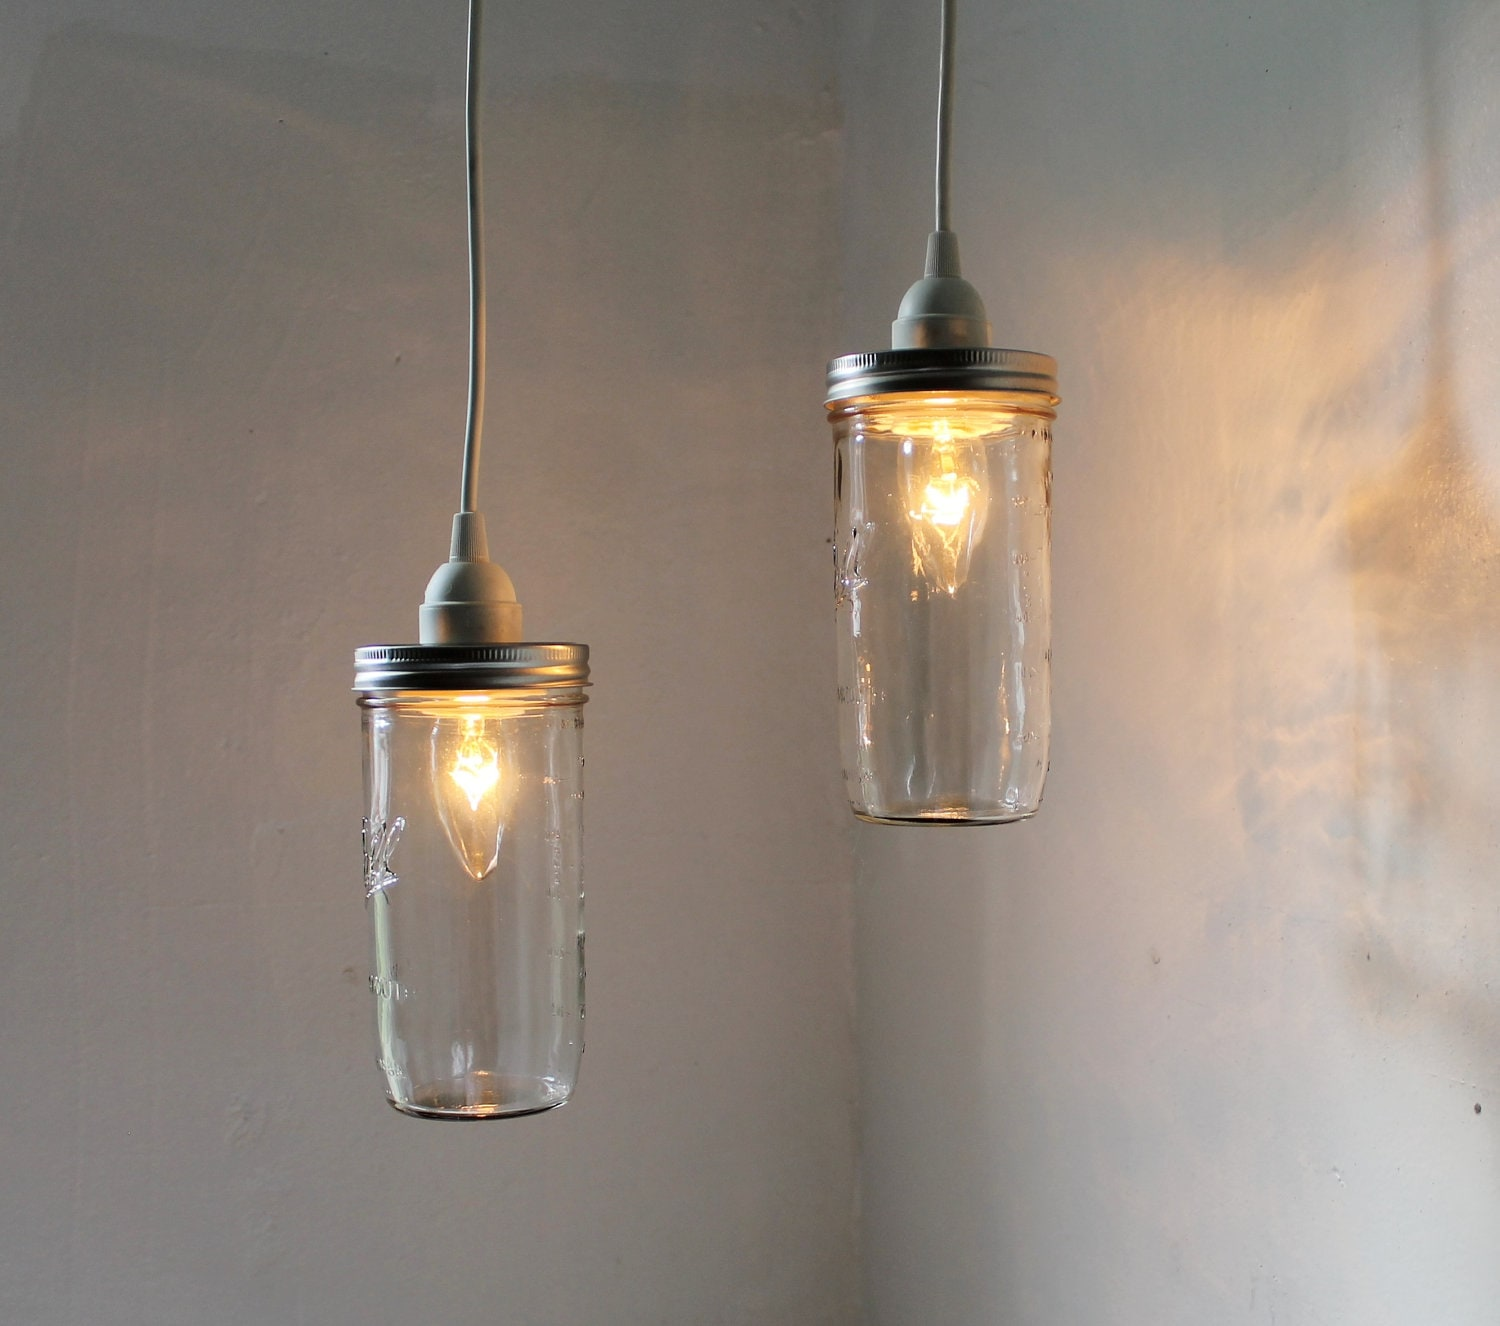 Mason jar pendant lights set of 2 hanging mason jar pendants for Hanging lights made from mason jars